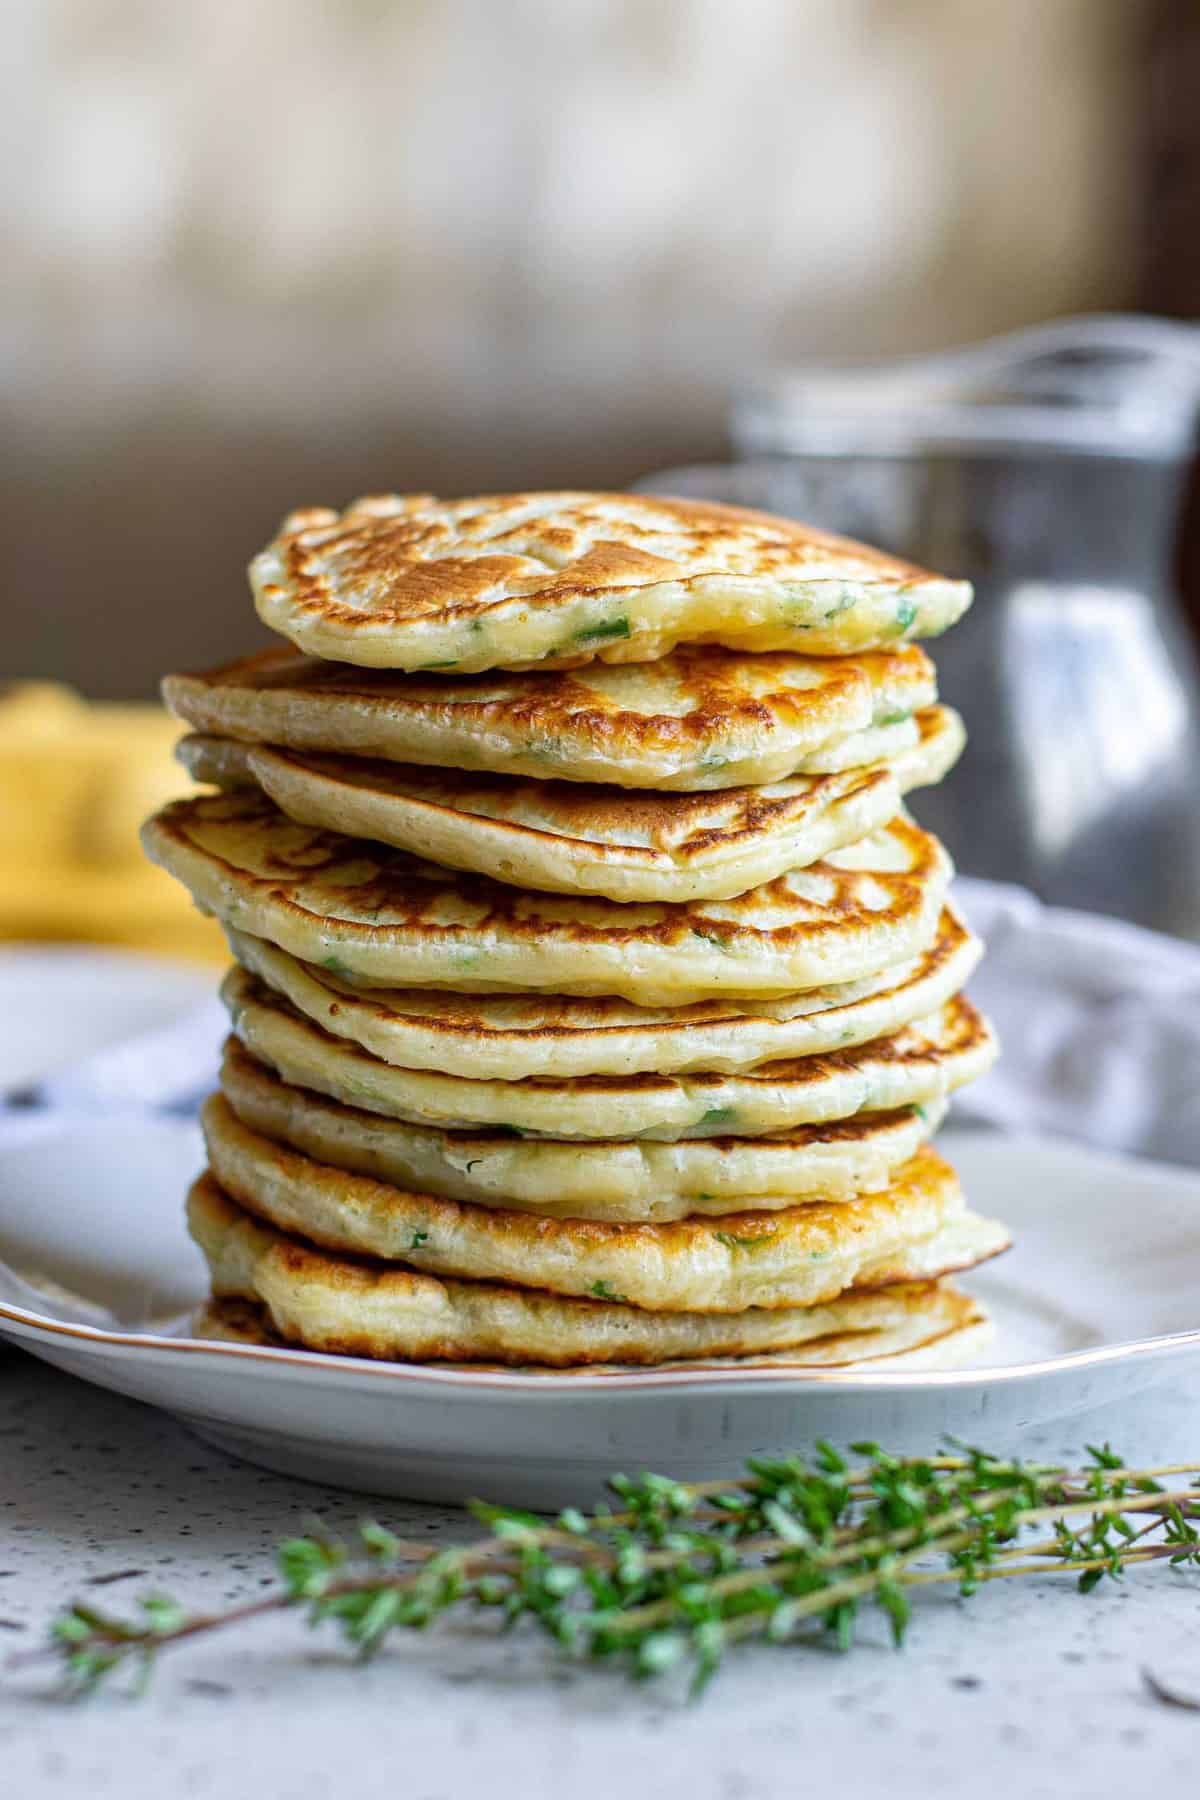 Savory pancakes stacked up with no toppings.